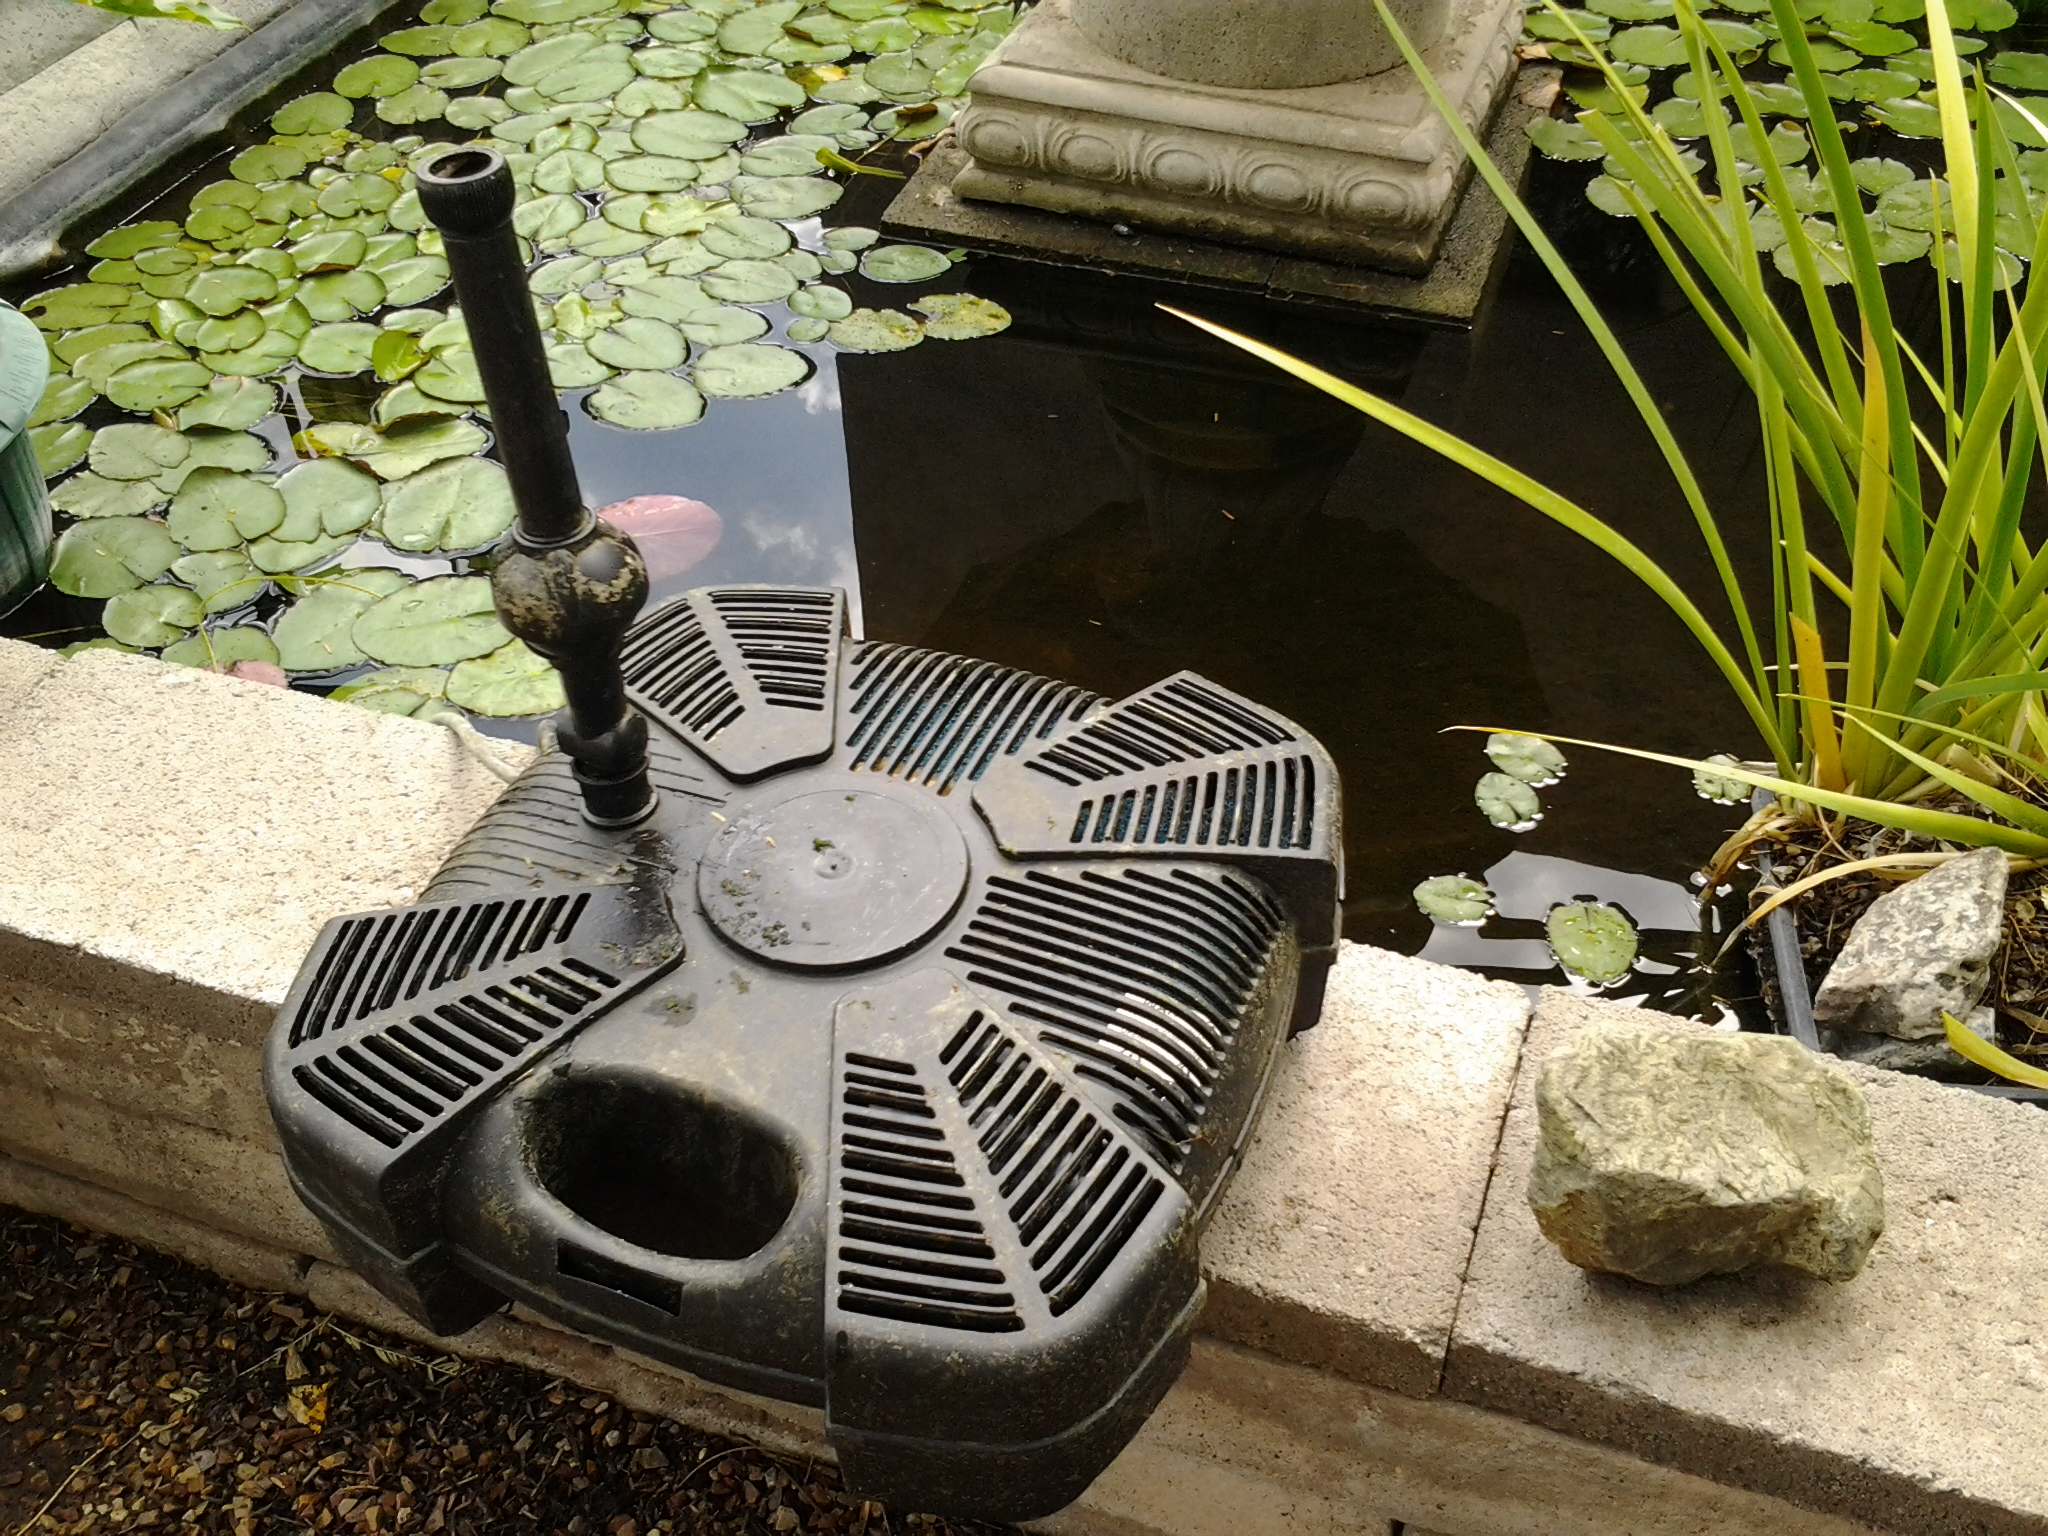 Best pond filter system all in one lifegard pump with uv for Best small pond pump